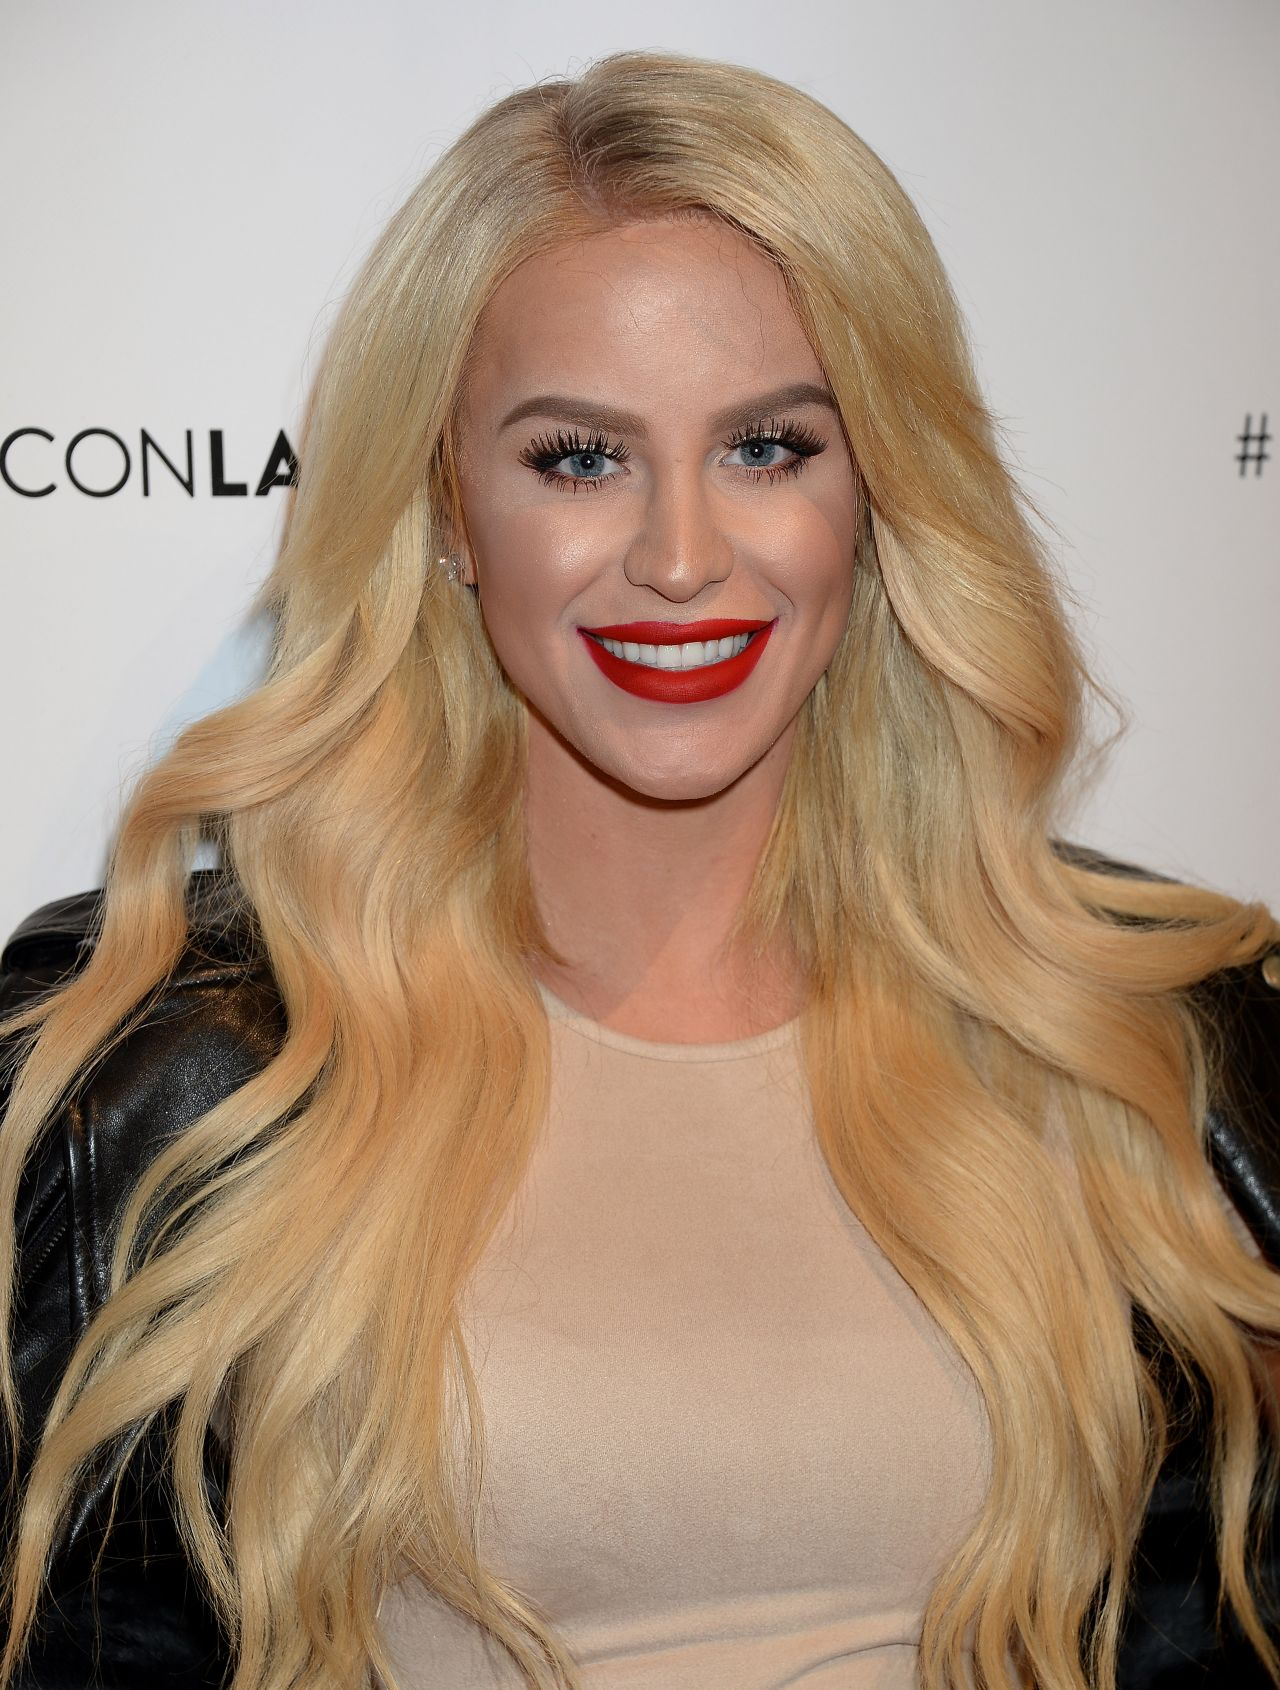 Gigi Gorgeous Beautycon Festival In Los Angeles July 9 2016